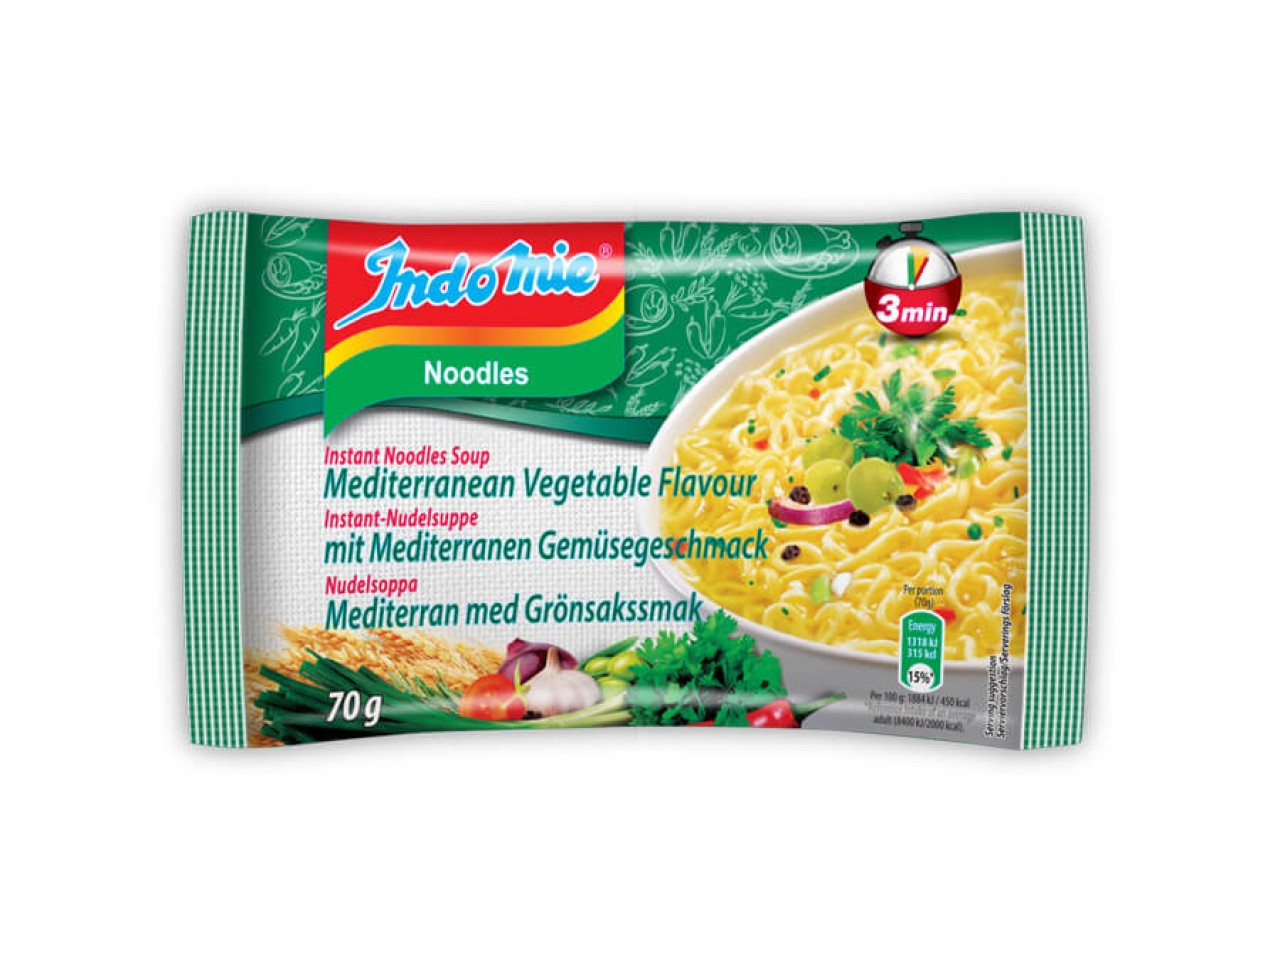 Indomie instant noodles soup Mediteranean vegetable flavour